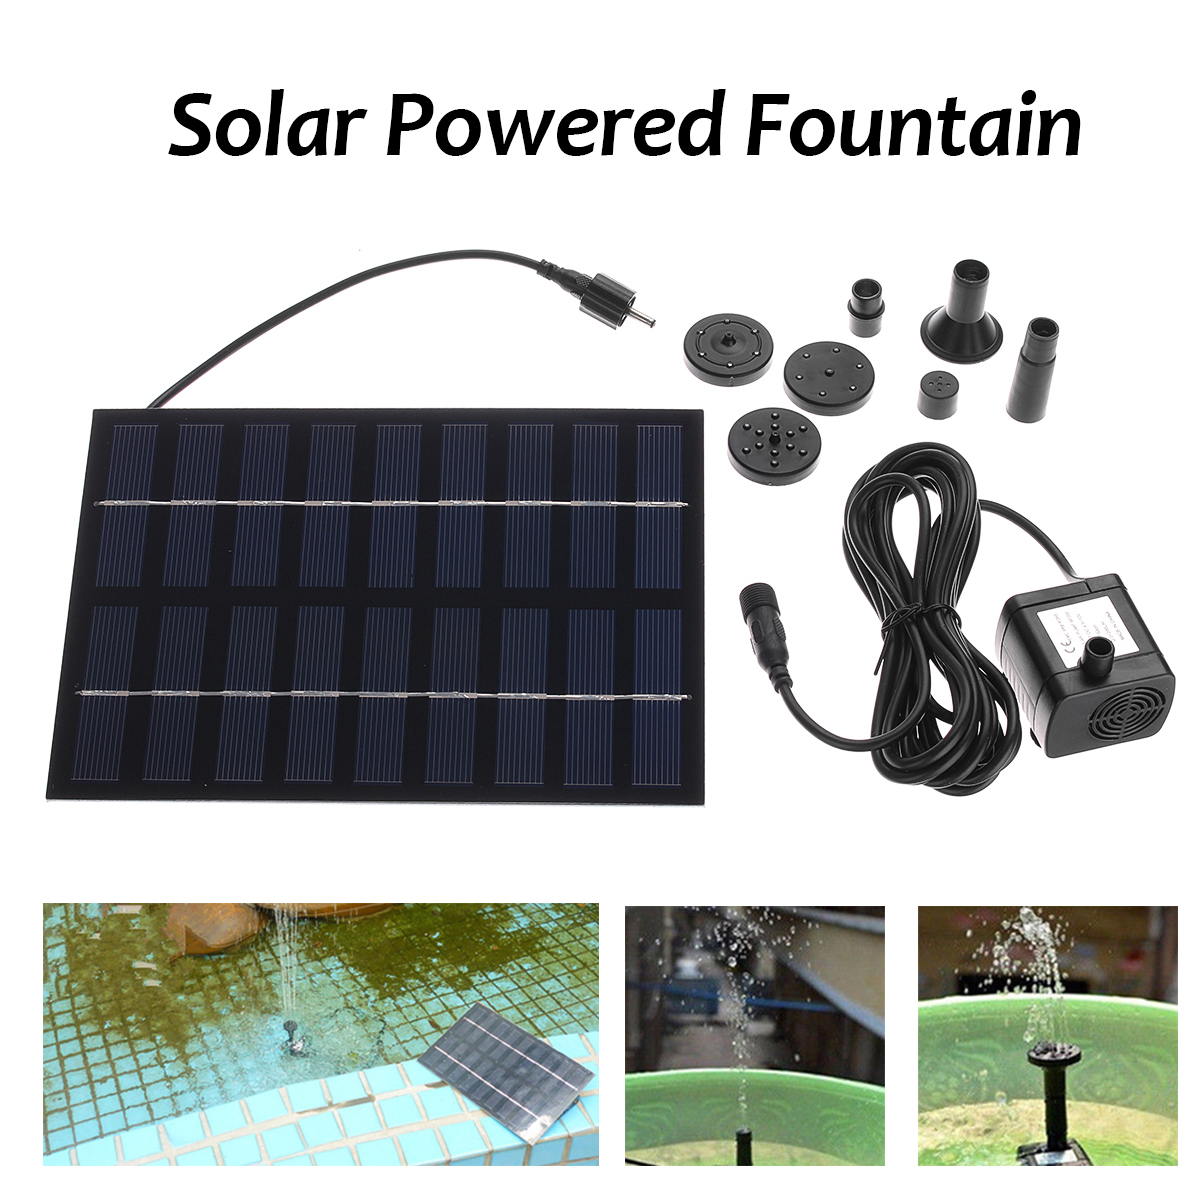 Solar Pump Solar Power Water Pump Panel Kit Fountain Pond Pool Water Garden Submersible Water Pump